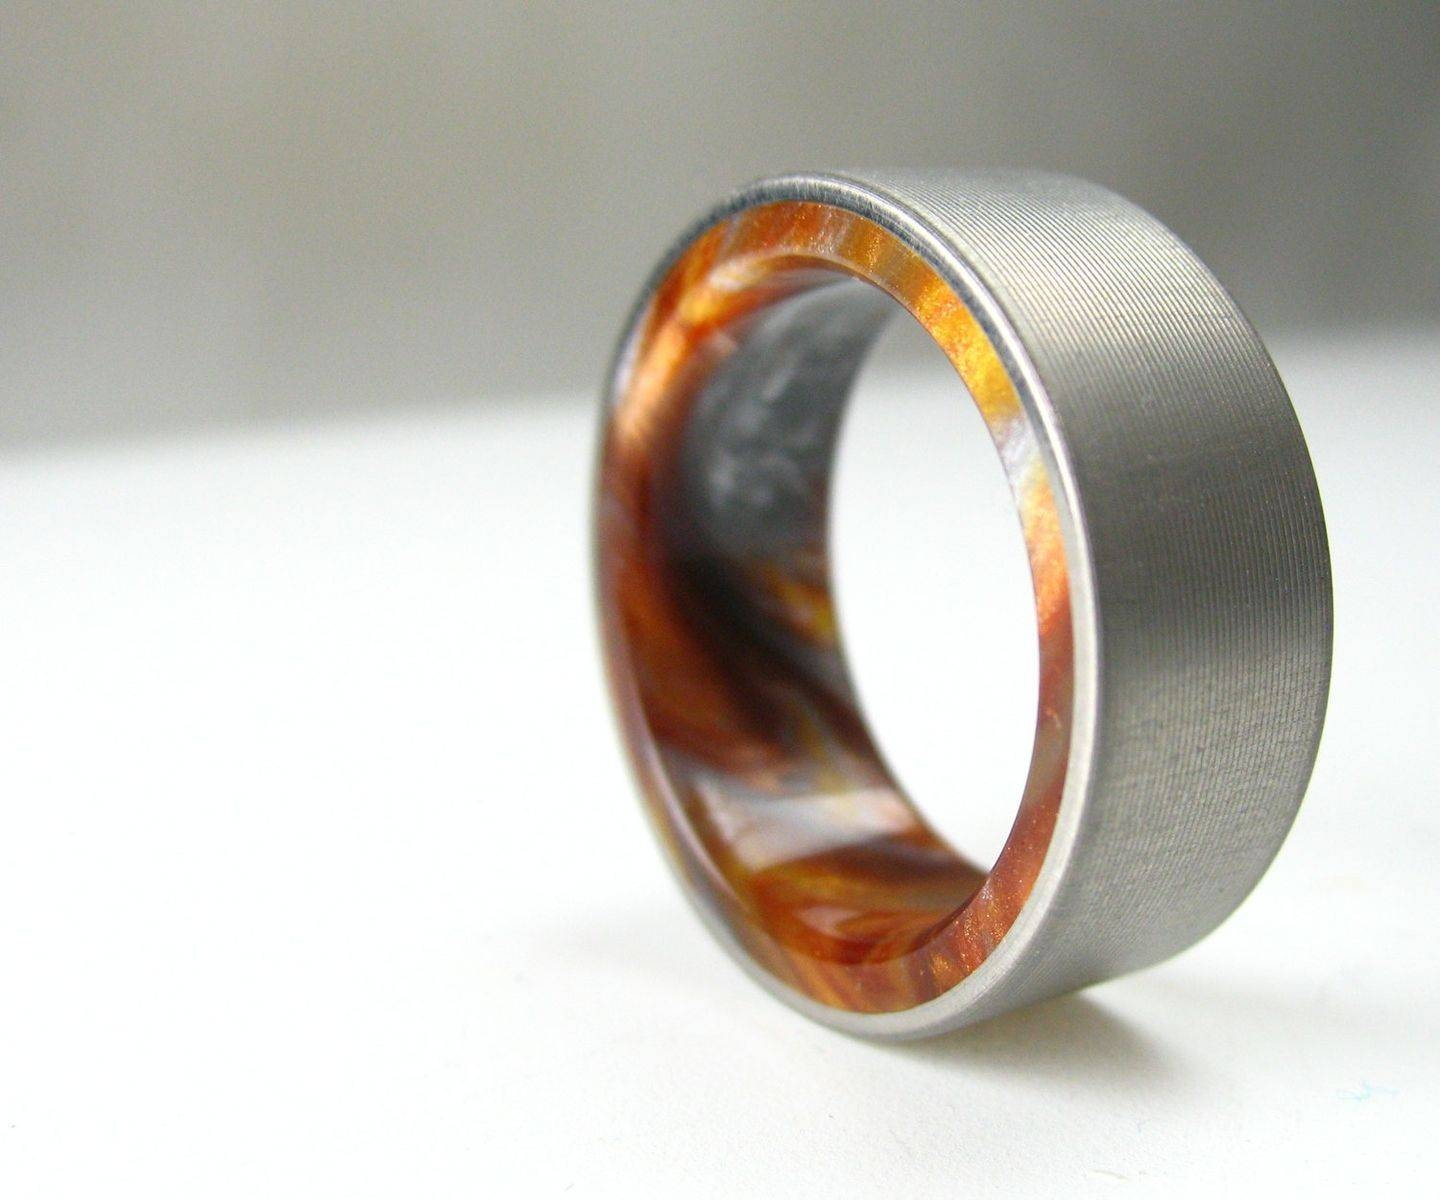 Modern Wedding Bands | Contemporary Wedding Rings | Custommade Within Copper Men's Wedding Bands (View 8 of 15)